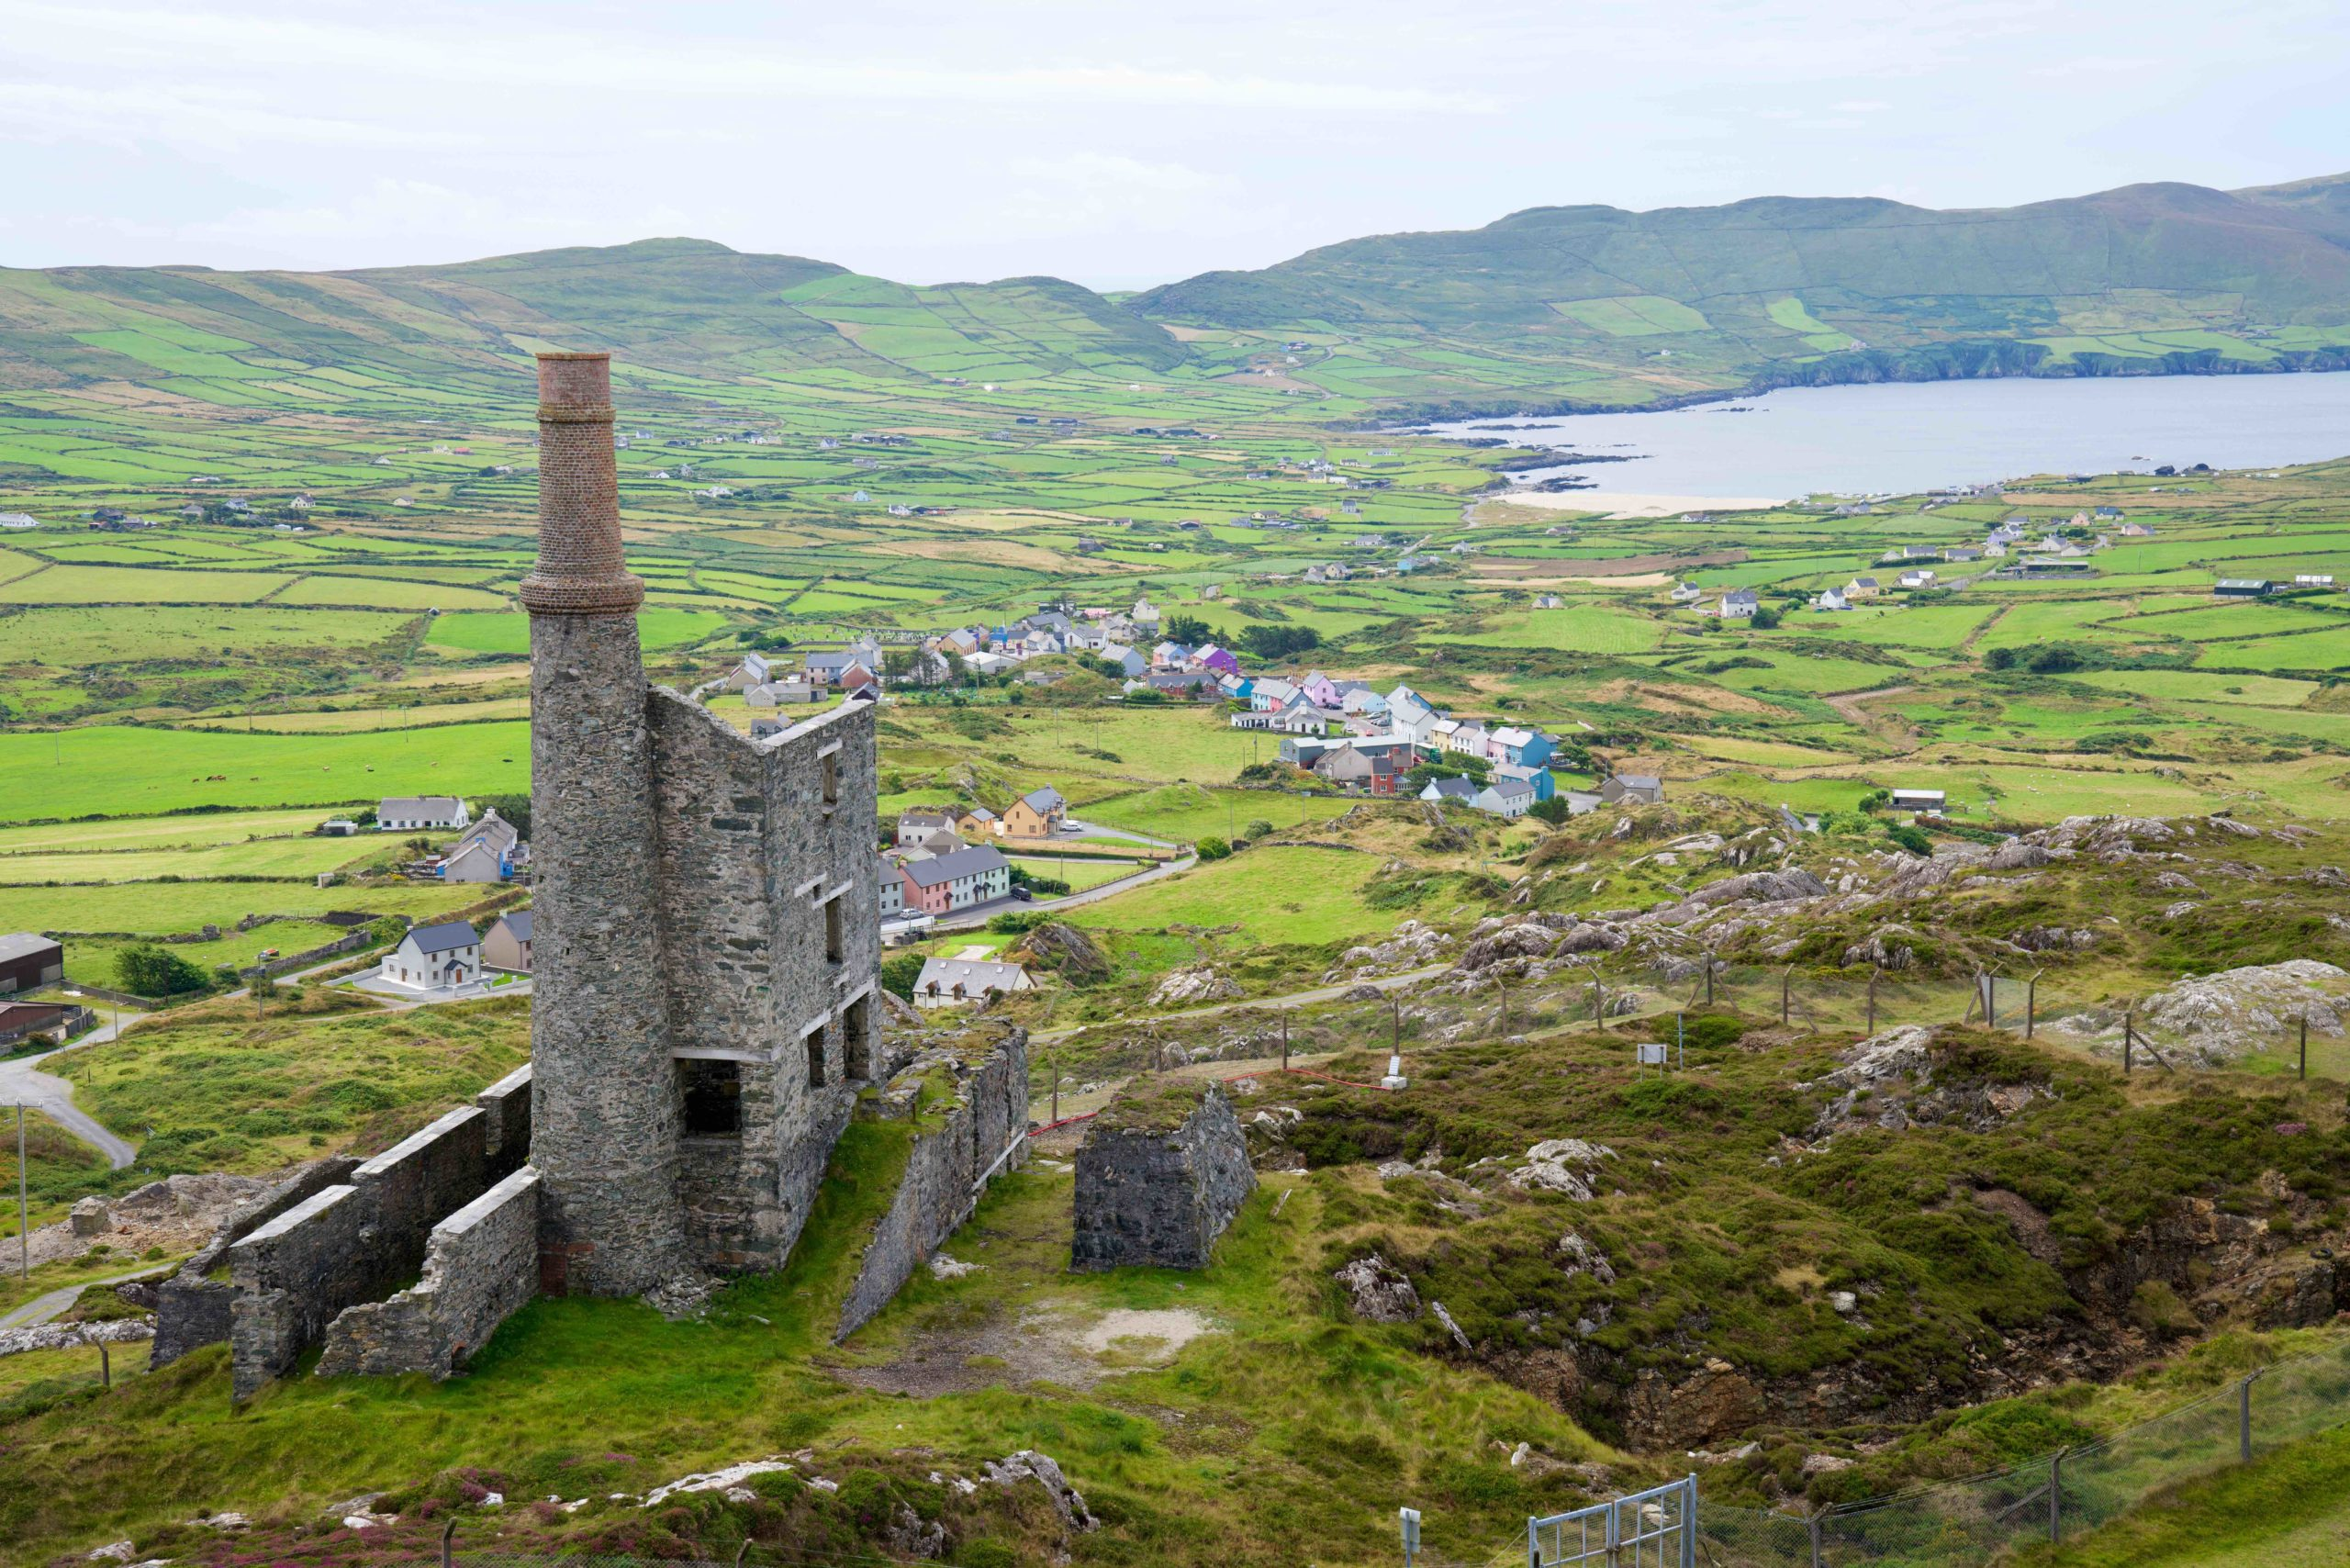 RTÉ series 'Building Ireland' visits Allihies this month